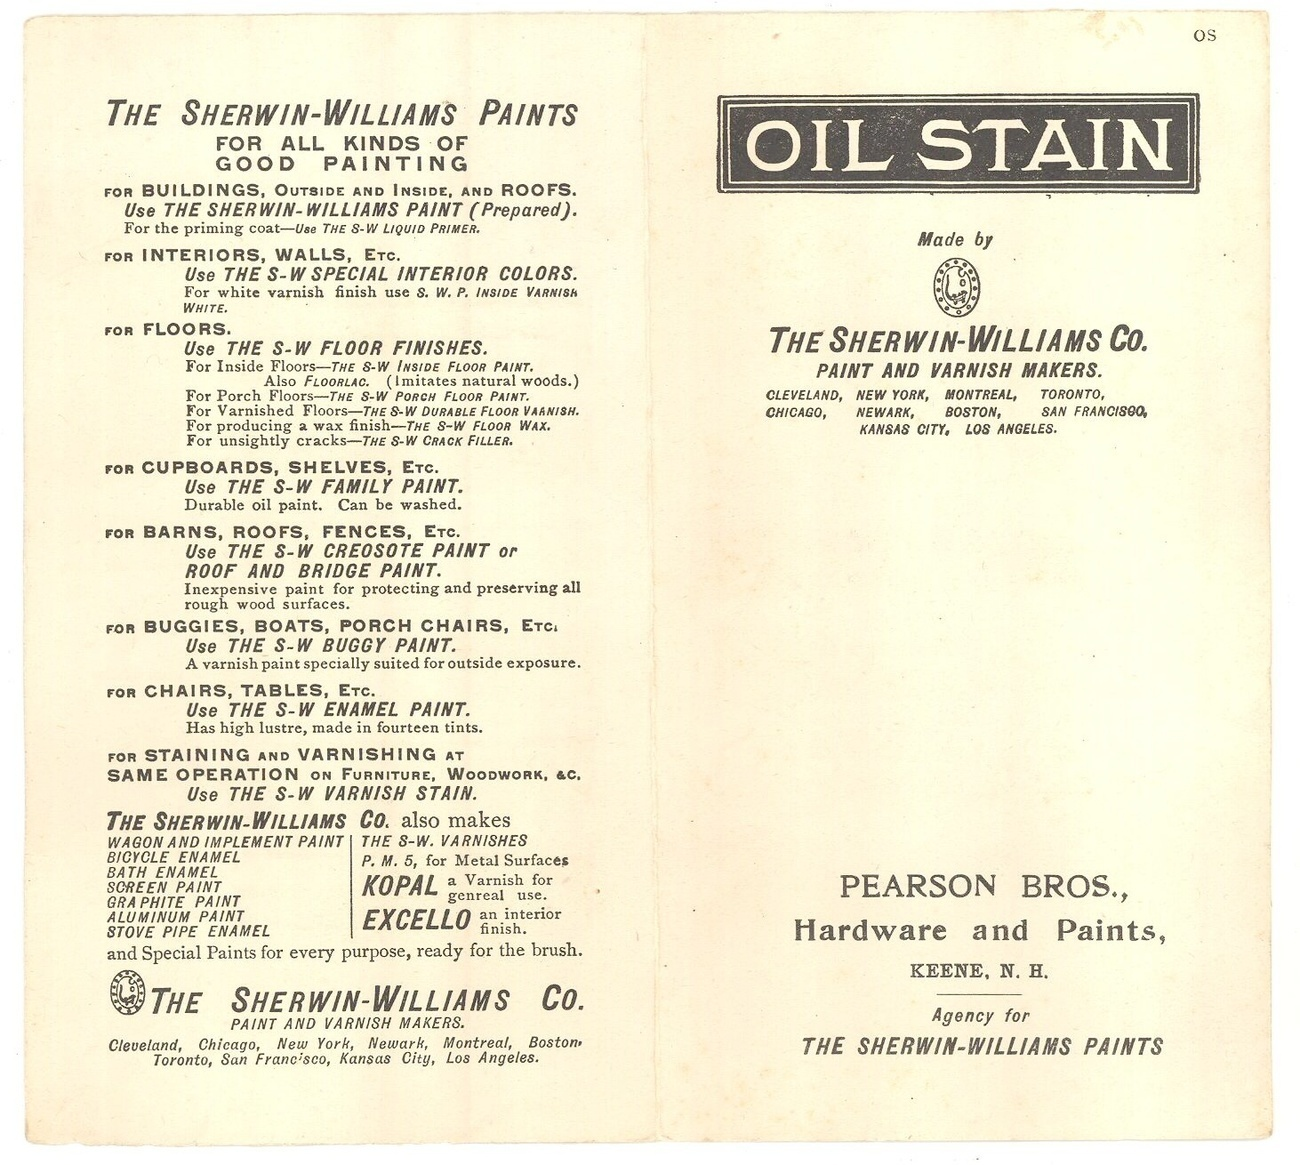 Sherwin Williams 1931 oil stain sample chart advertising Pearson Bros Keene NH